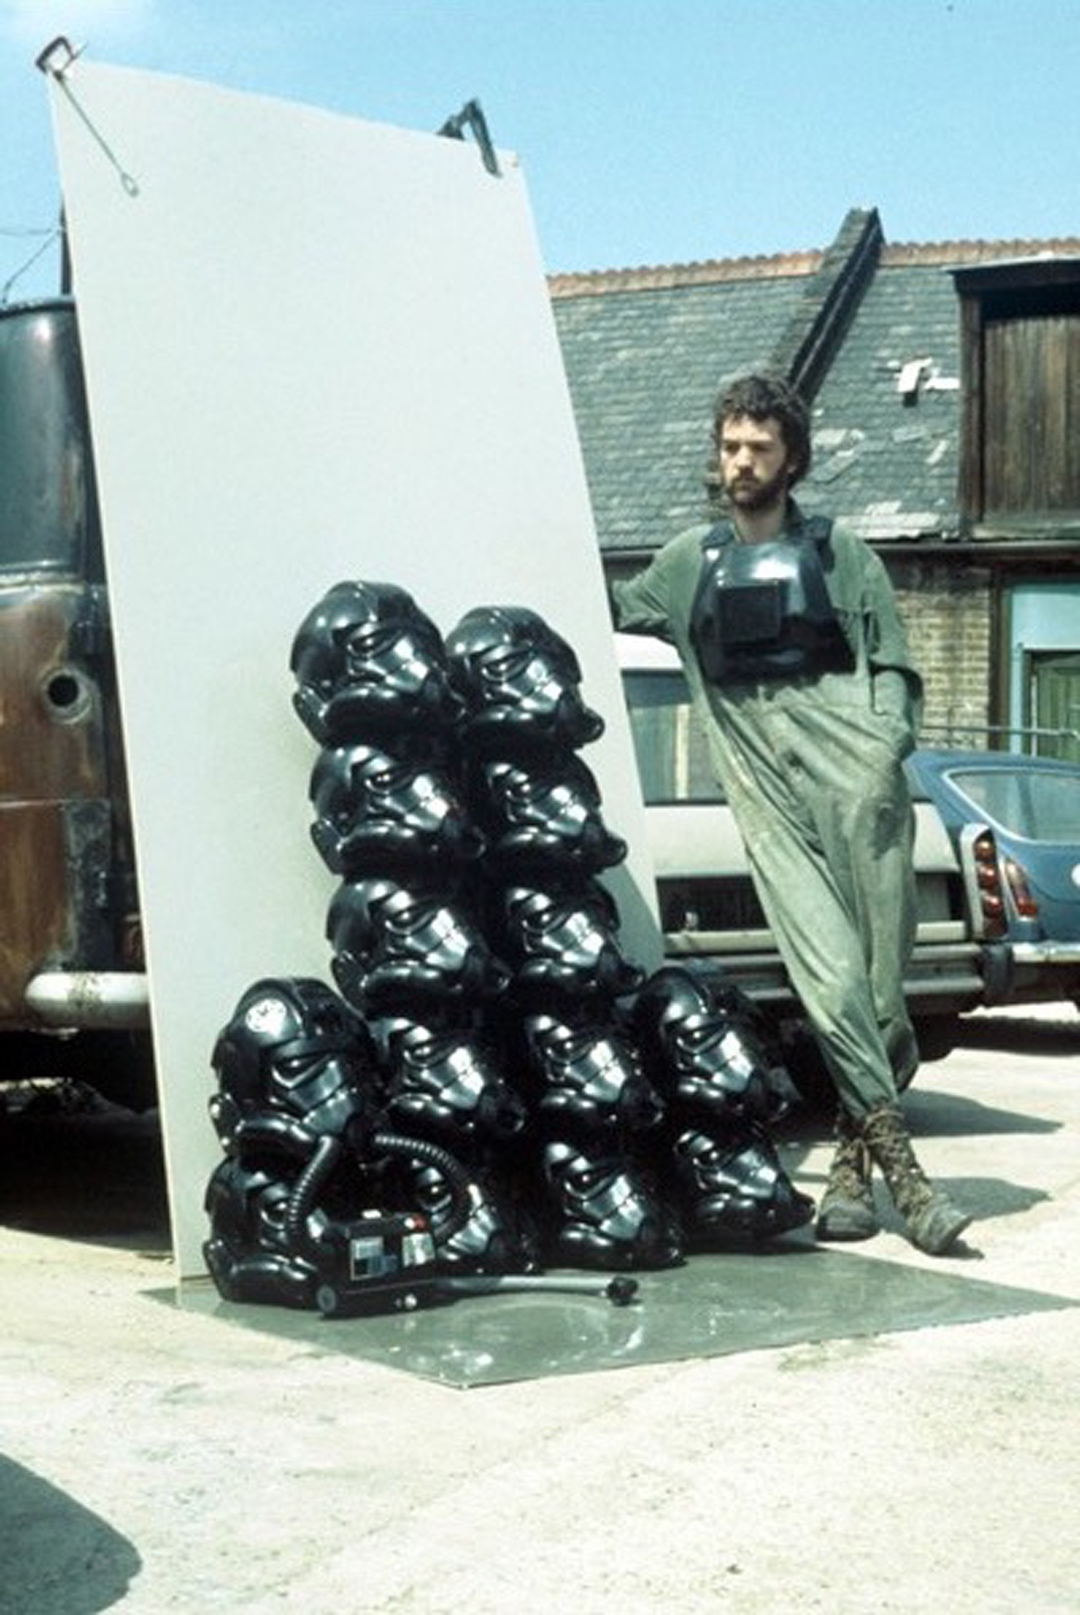 Star Wars complete. - It was fortuitous that Andrew just about managed to get every character finished and on set.Check out the burnt out van and roof tiles blown off the surrounding buildings.Andrew was not popular with the neighbours, after all, 76 The Green, was only a sweet shop.